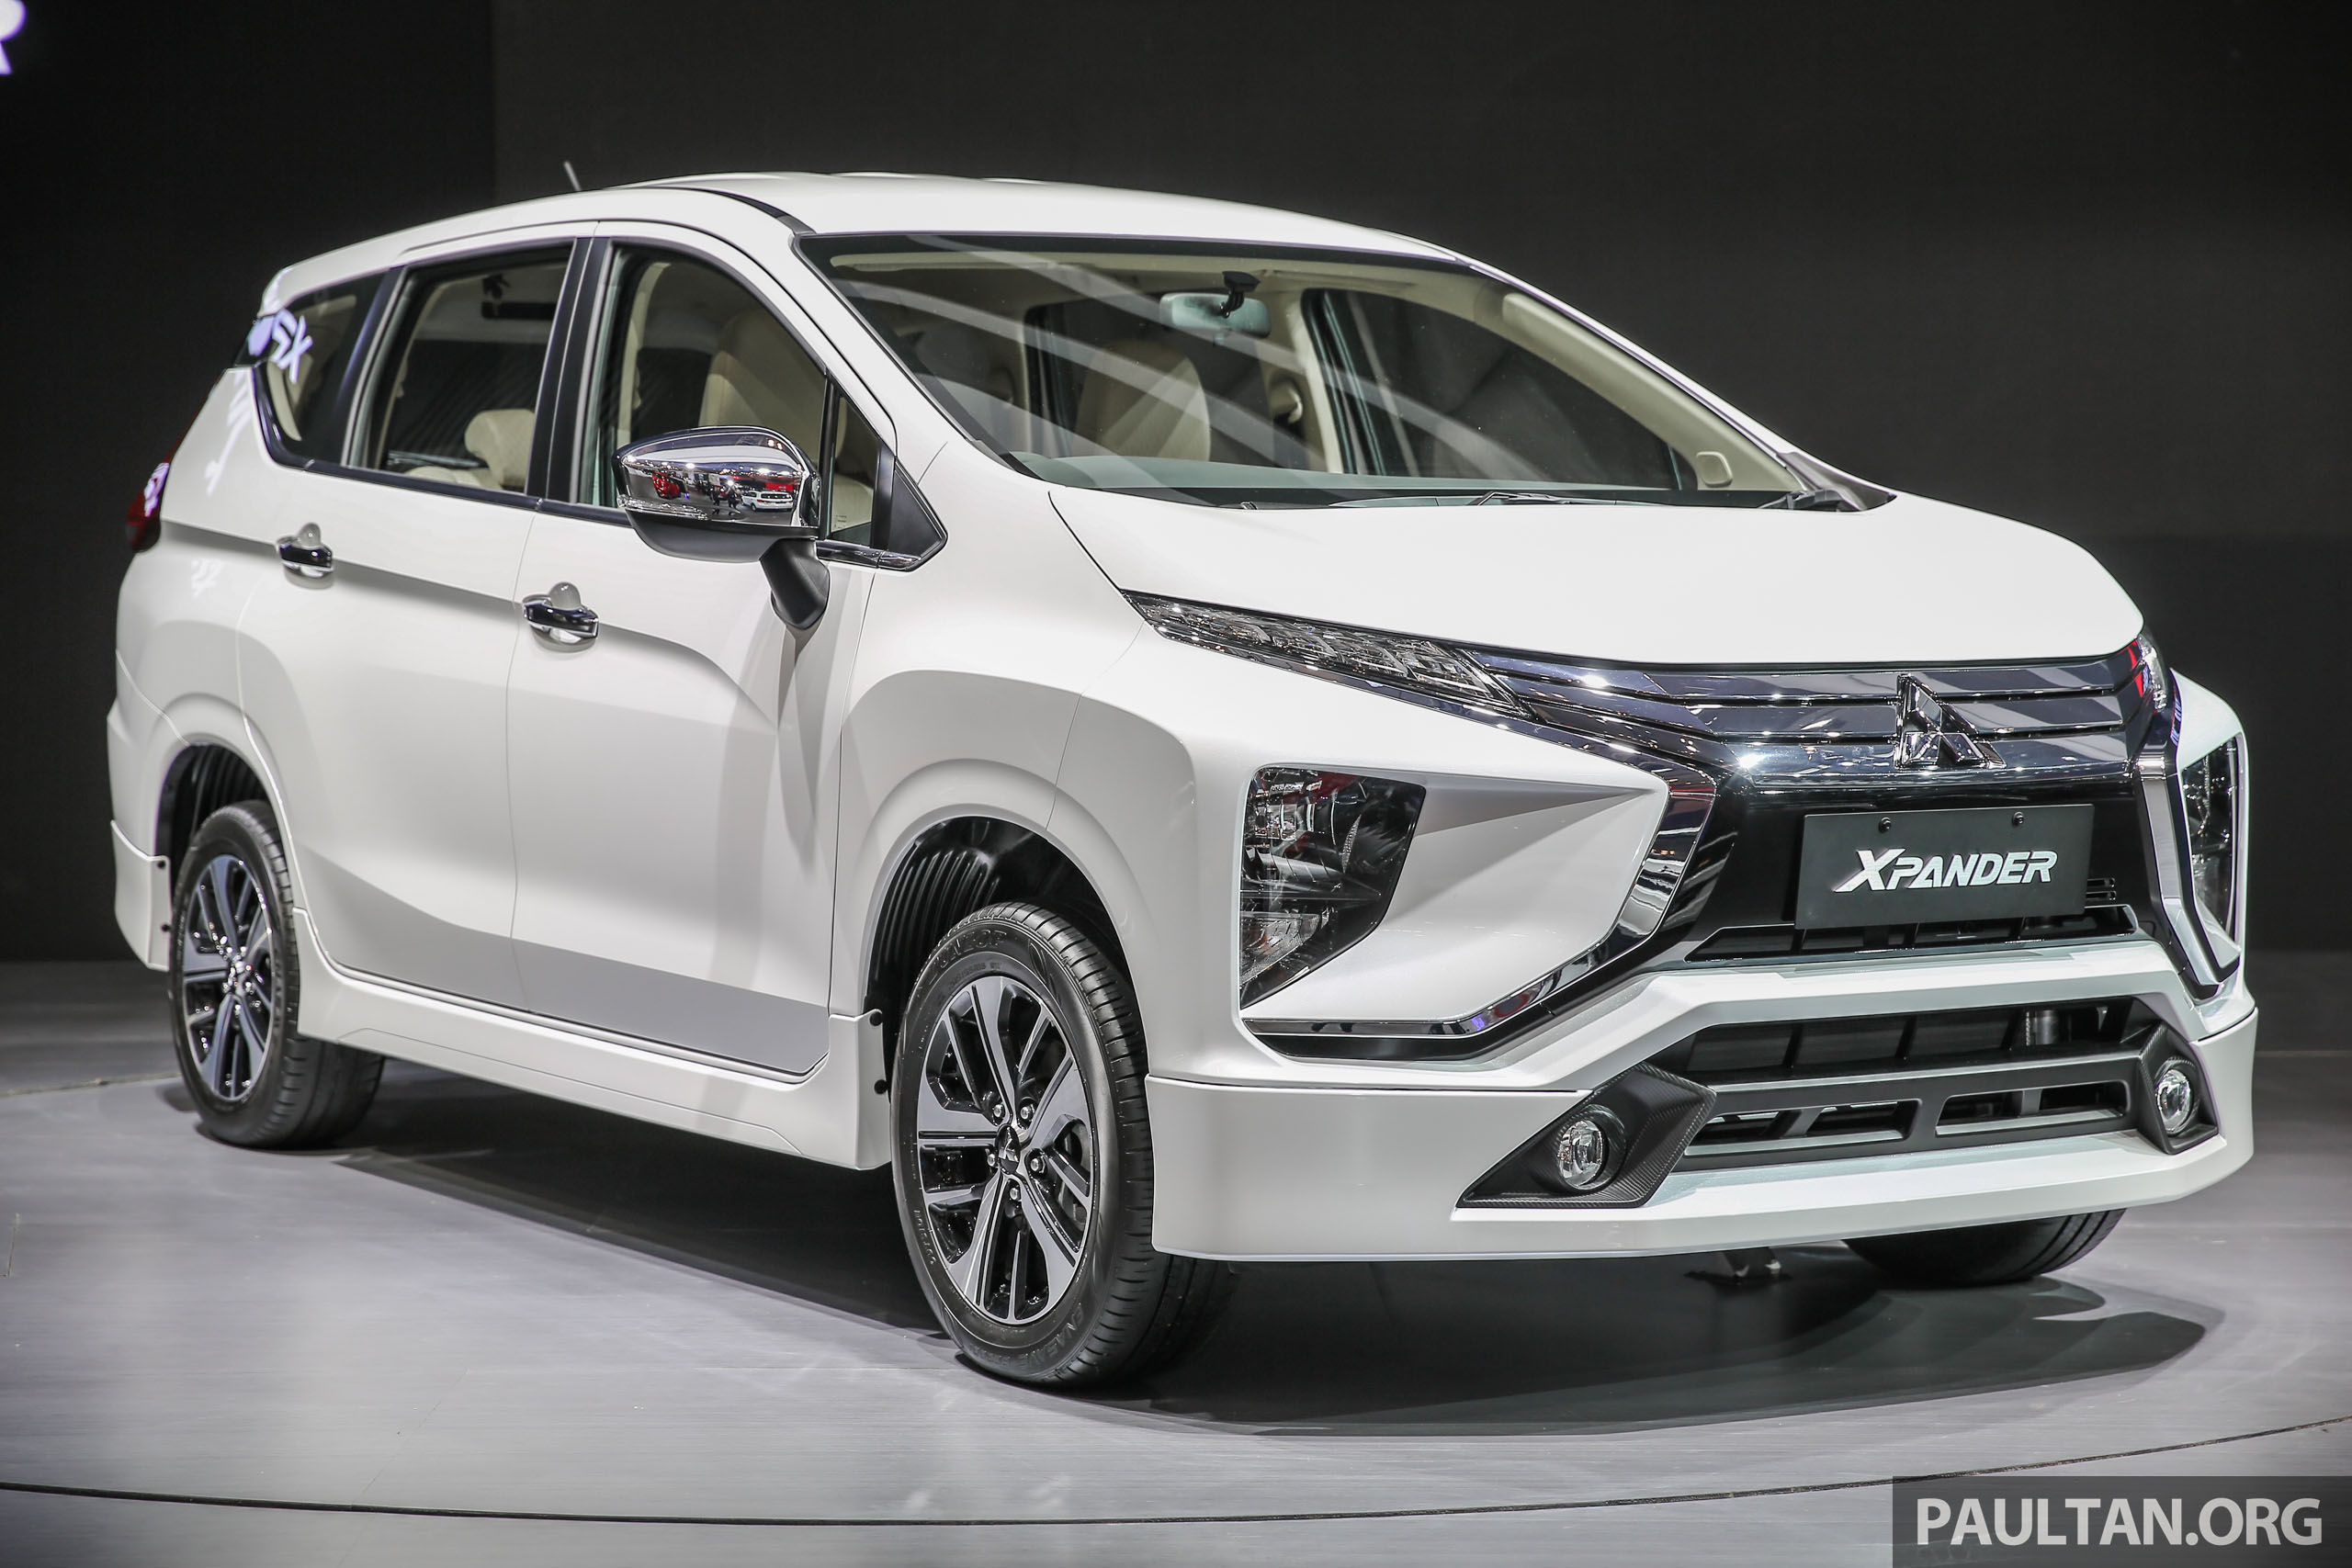 mitsubishi xpander glx 2018 with Mitsubishi Xpander Bodykit 1 on Mitsubishi Expander Interior also Price List as well New Mitsubishi Xpander Mpv Maruti Ertiga 12278804 as well Daftar Harga further Mitsubishi Unveils All New 2016 Montero.